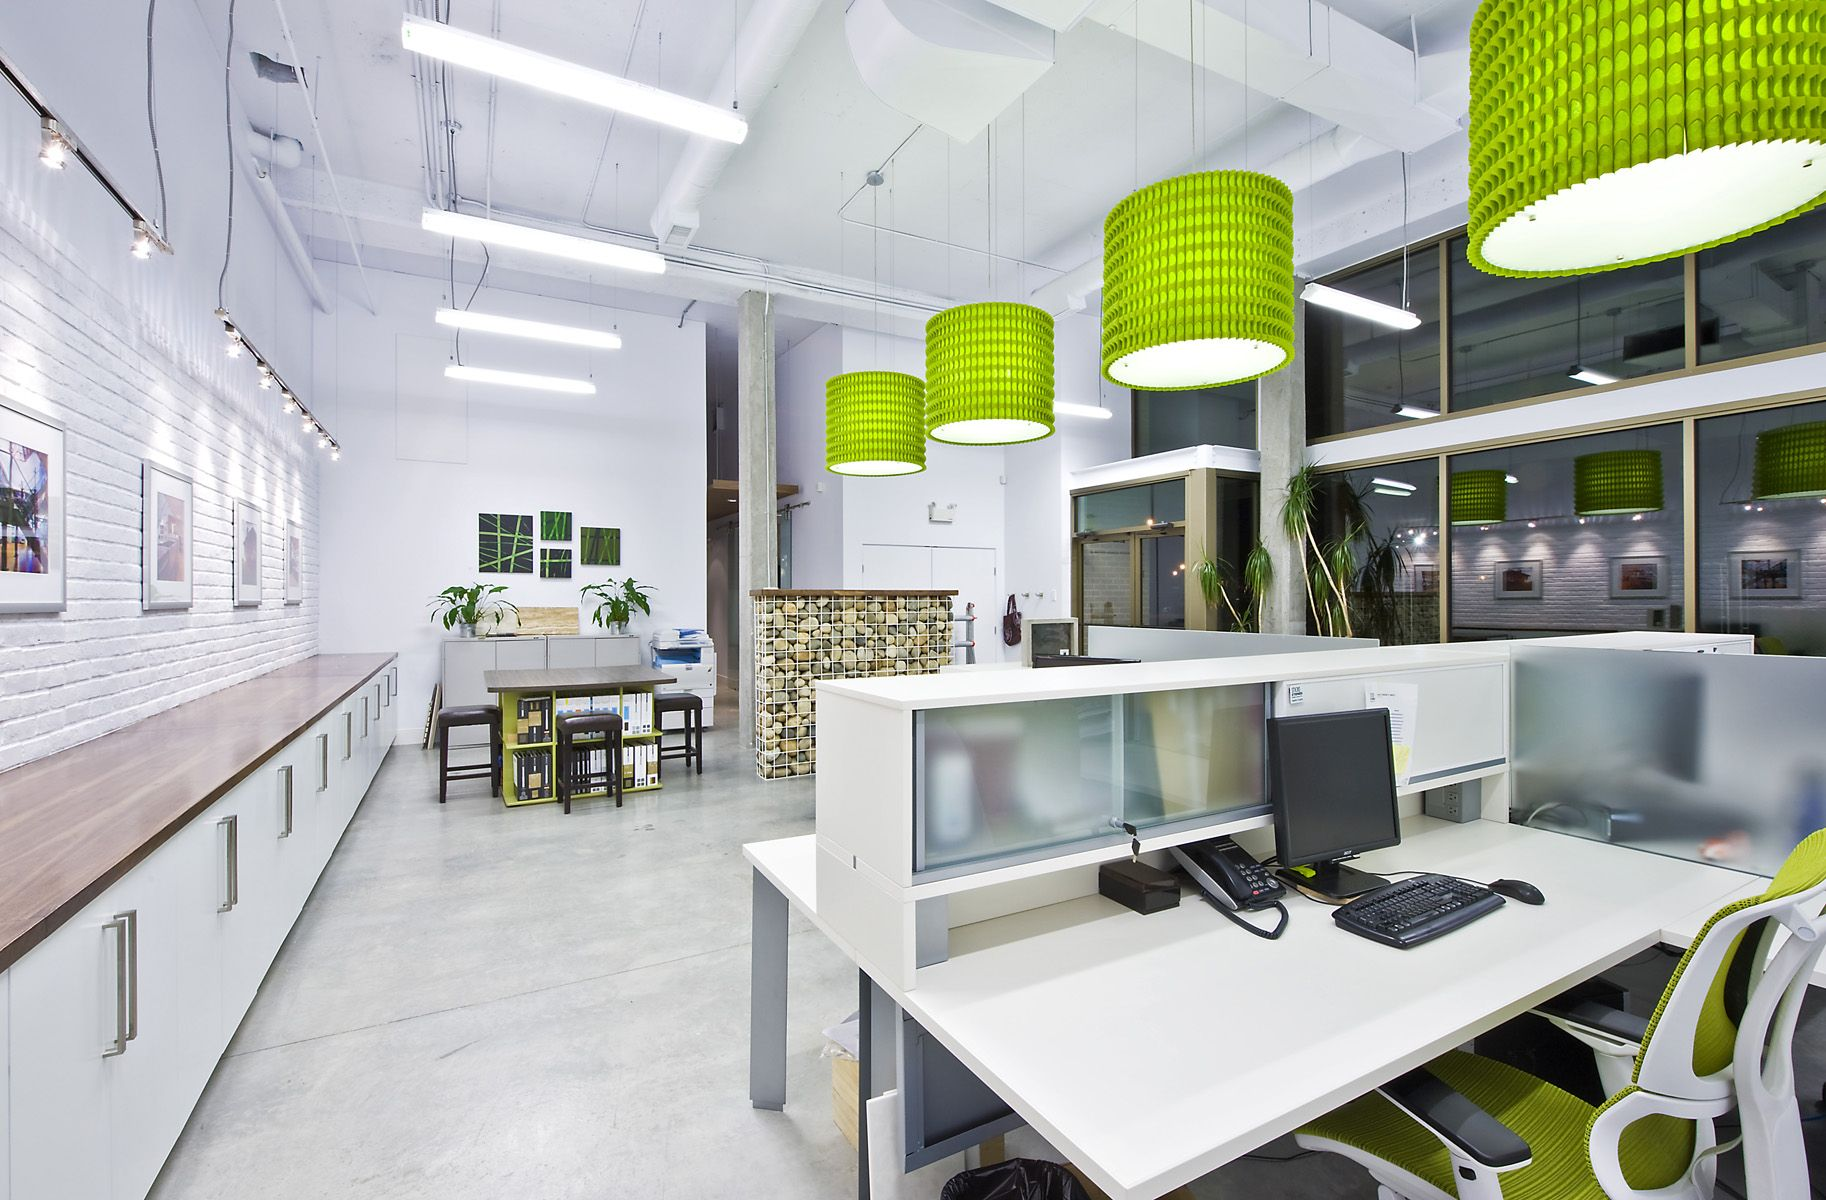 office studio design. Office Studio Design. Sticks And Stones New Office! Design Studio3 I